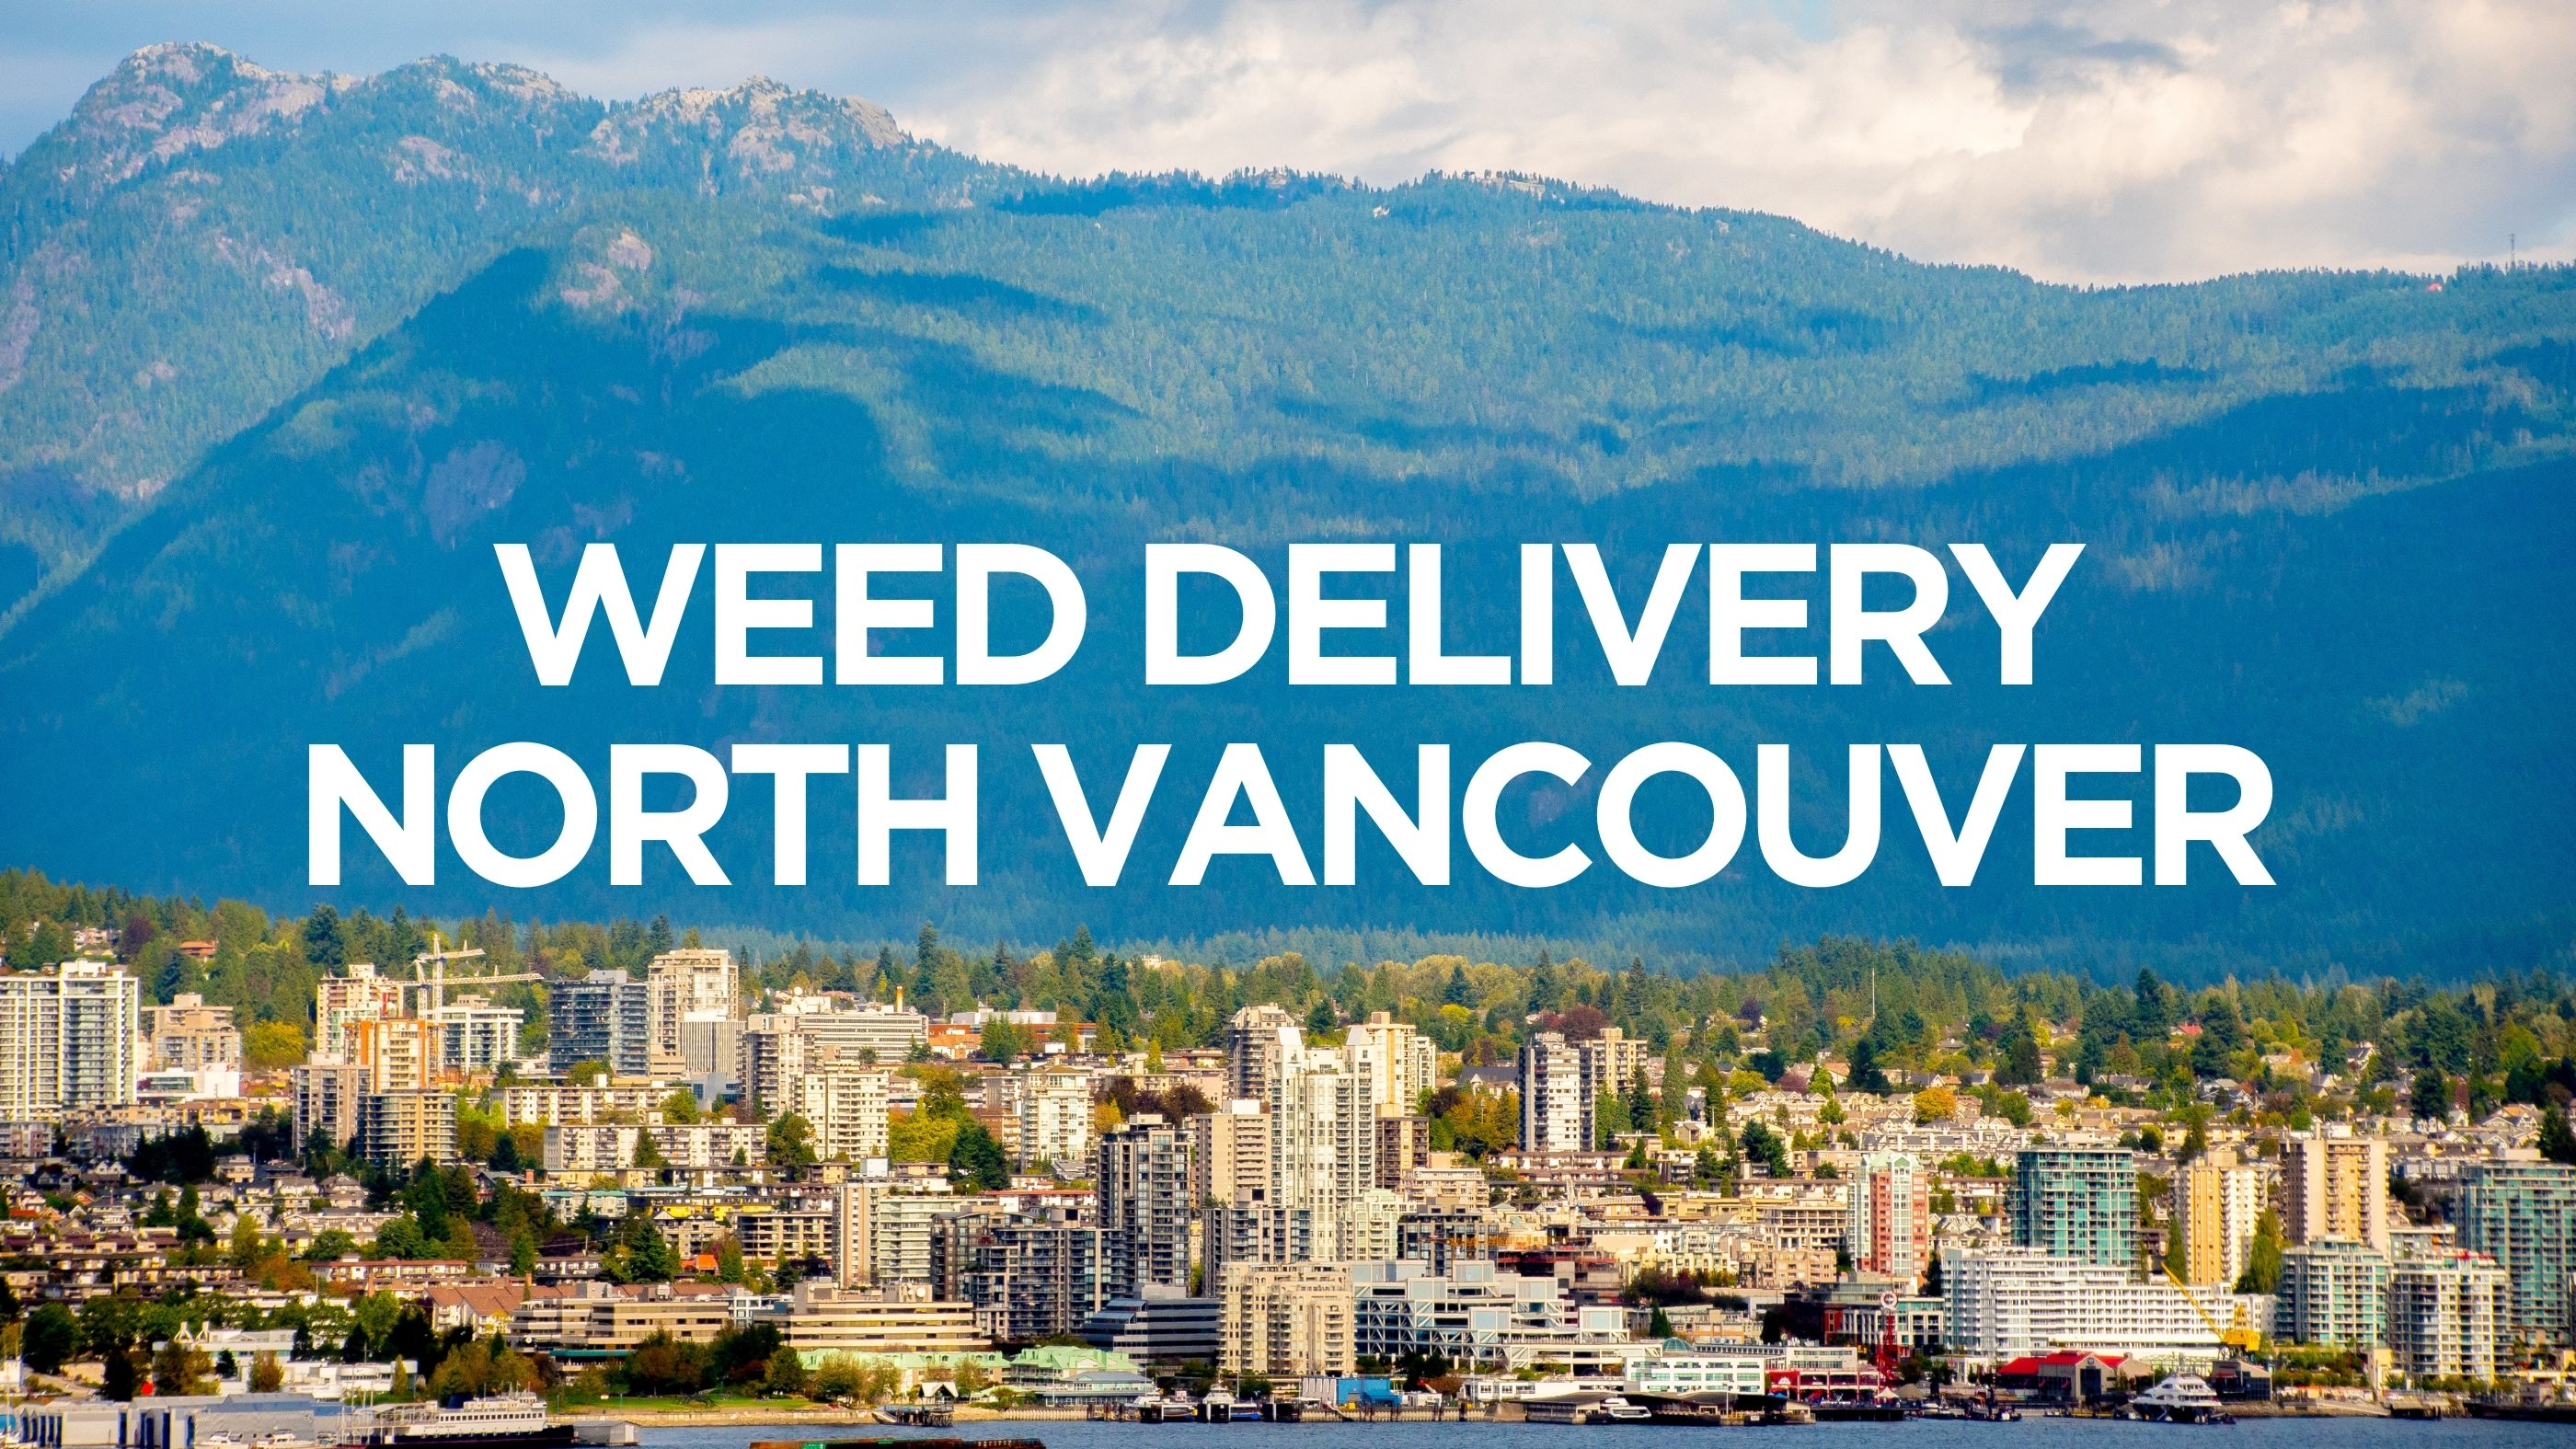 Weed Delivery North Vancouver